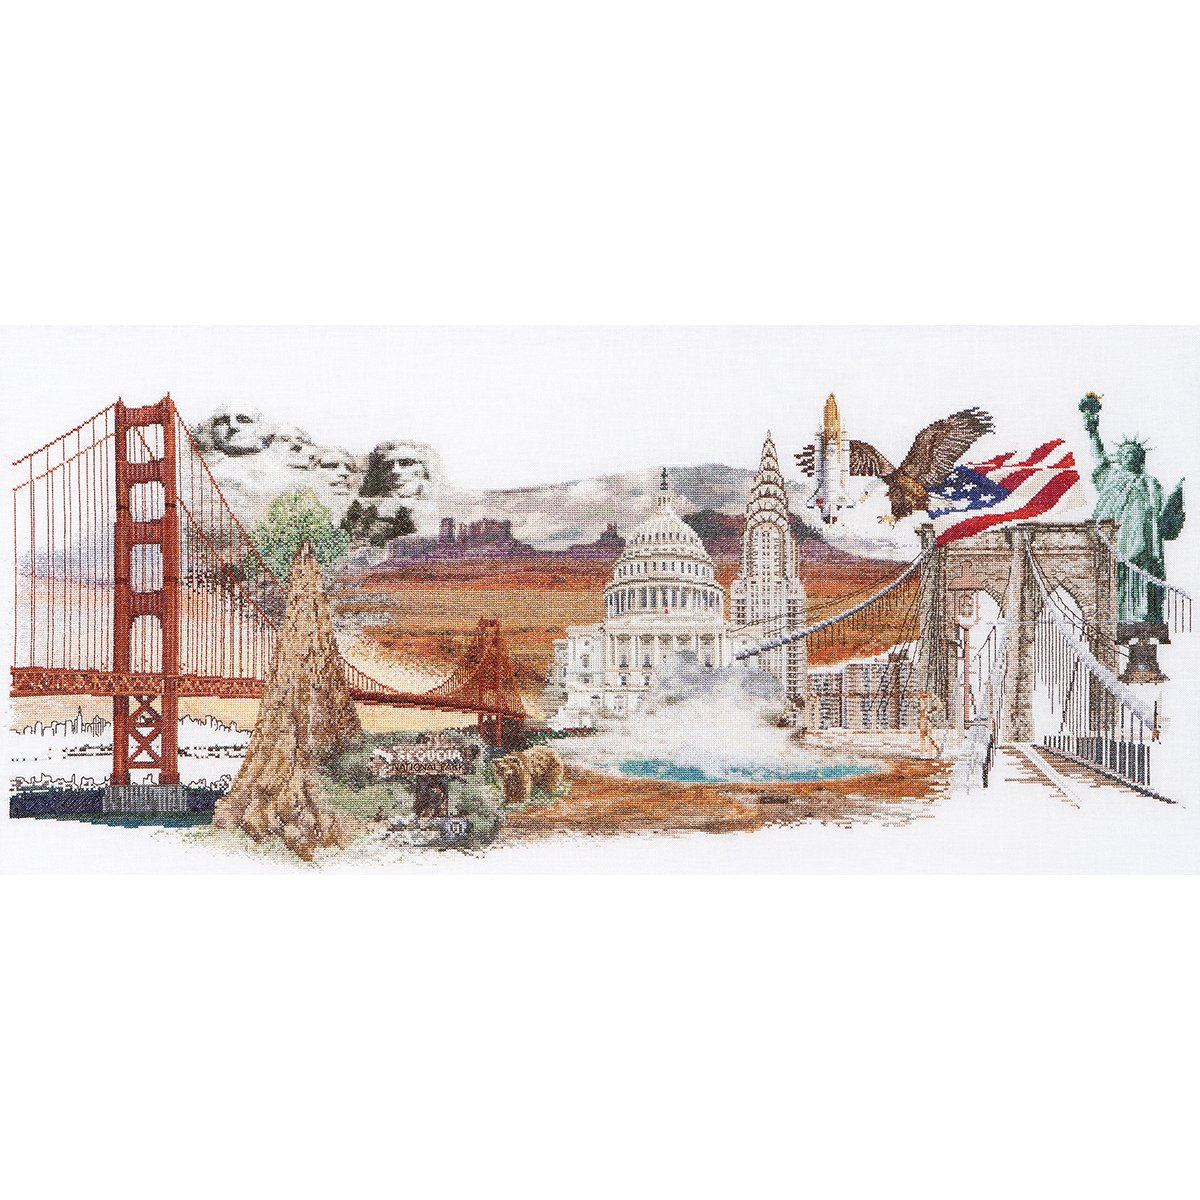 Thea Gouverneur 36 Count America on Linen Counted Cross Stitch Kit, 29 x 13.5 by Thea Gouverneur B00NBUHCCU